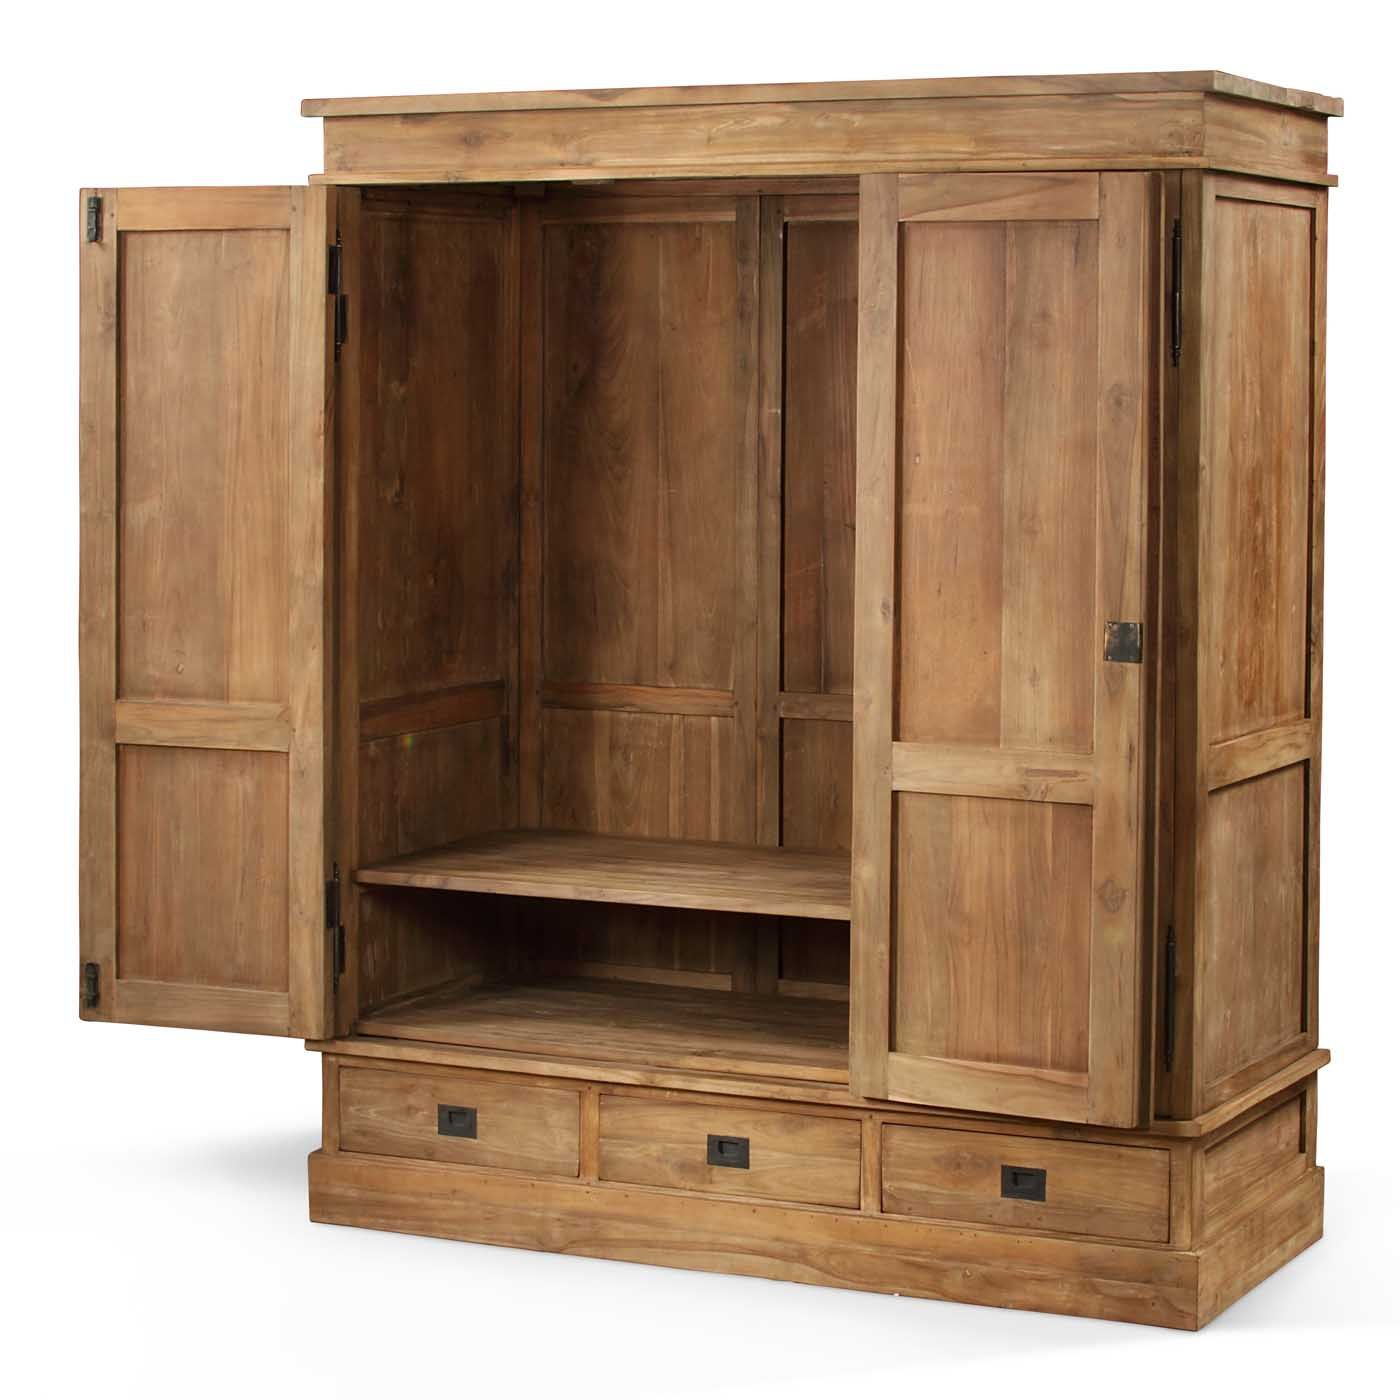 This is a wardrobe which is used for storing clothes the word wardrobe can also be used to - Nice bedroom wardrobes ...